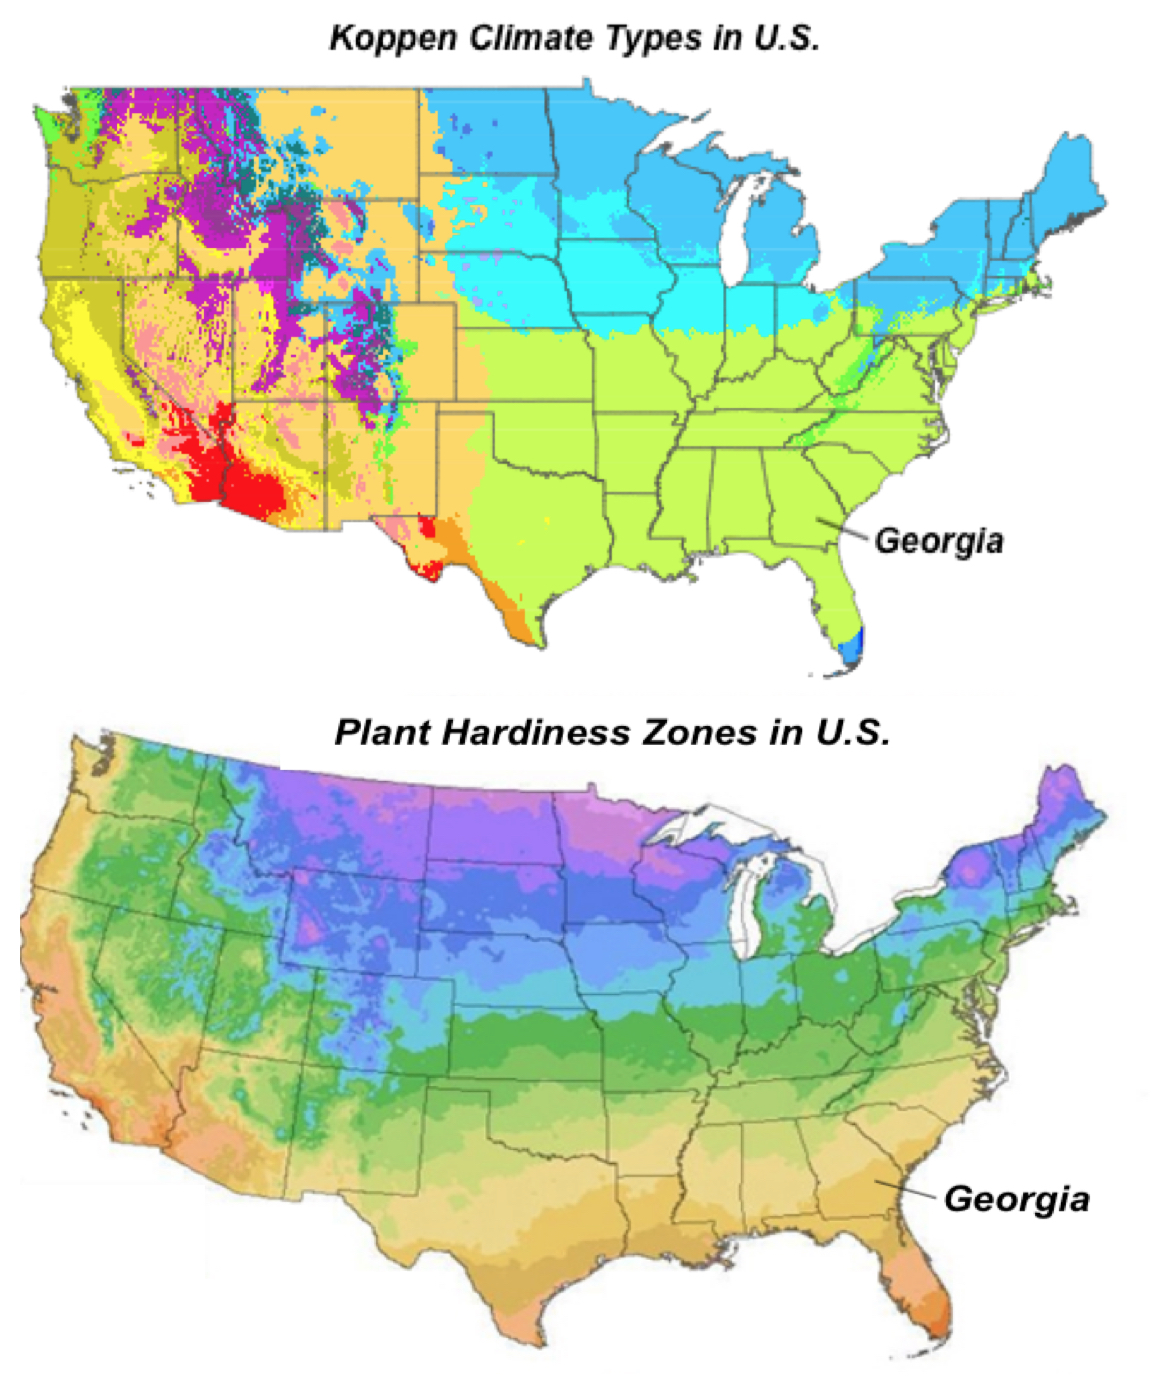 top showing the differences in the koeppen climate types in the u s bottom plant hardiness map showing that plants in georgia along the 31 32o